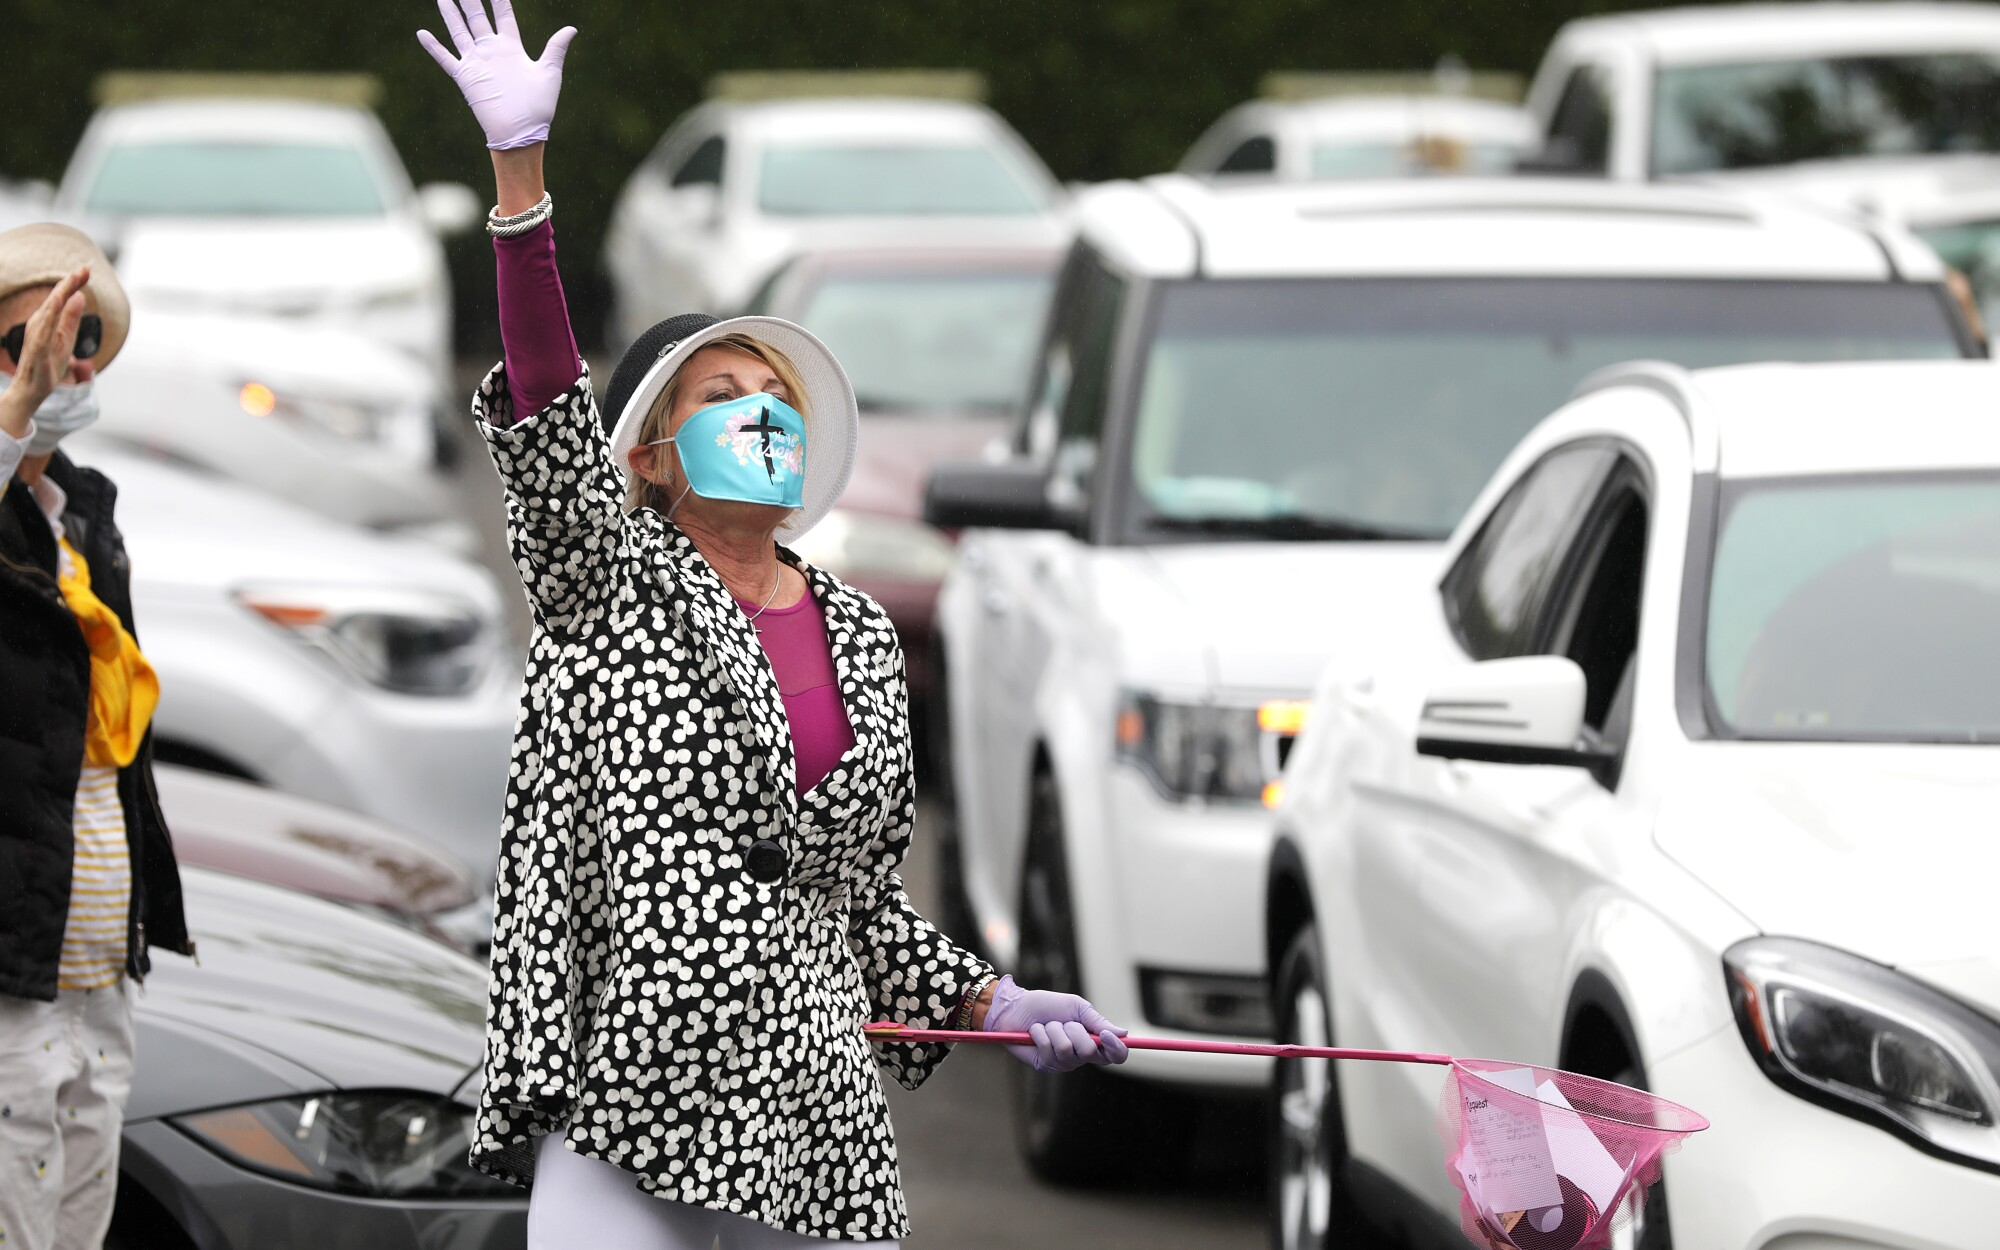 MaryAnn Lawson collects prayer requests in a Santa Ana parking lot.